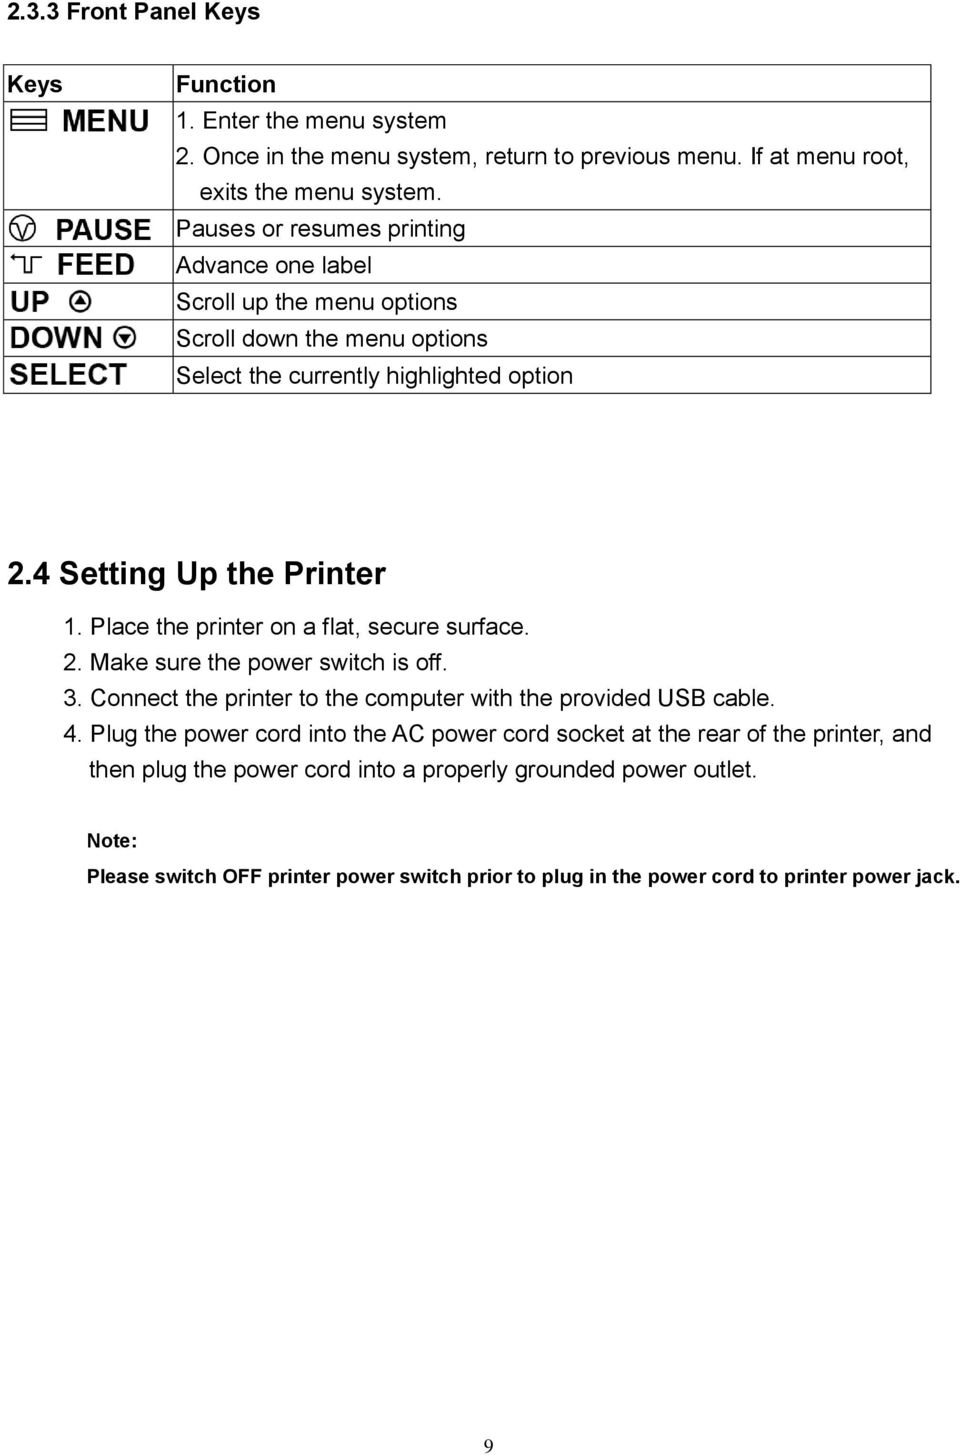 Place the printer on a flat, secure surface. 2. Make sure the power switch is off. 3. Connect the printer to the computer with the provided USB cable. 4.